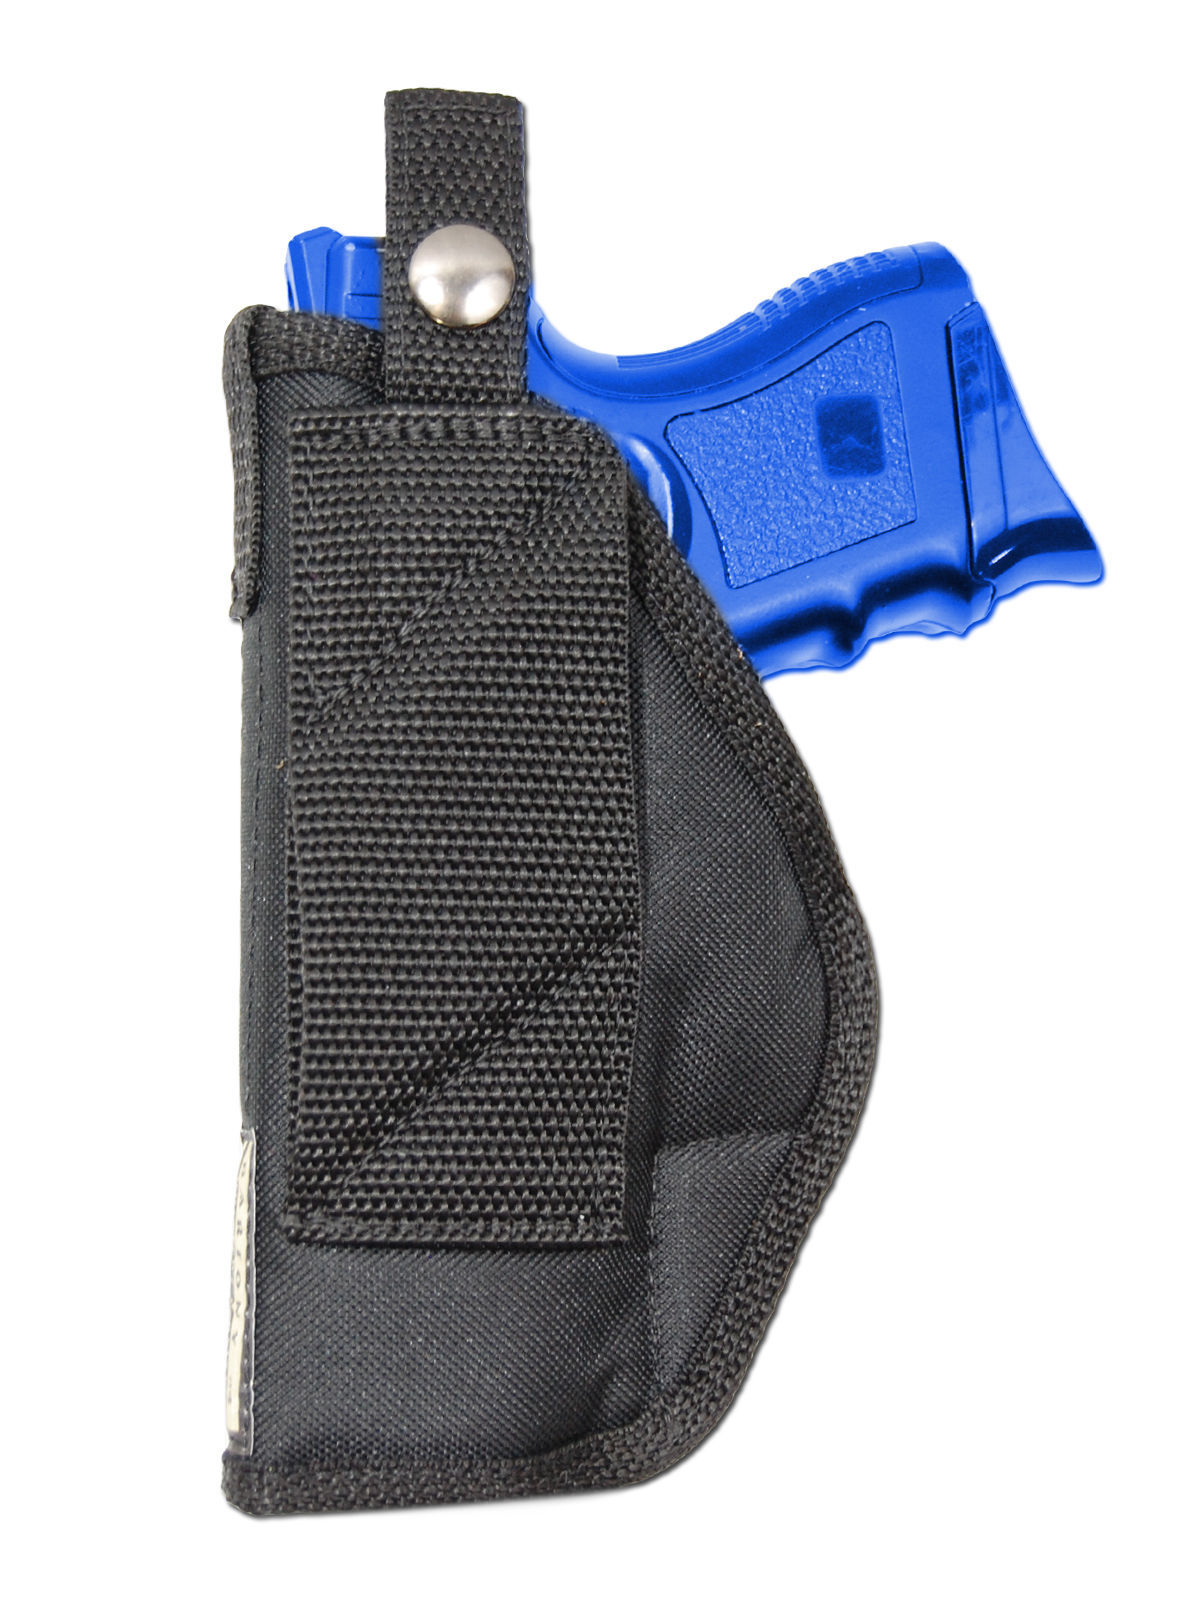 New Barsony OWB Cross Draw Gun Holster for Smith & Wesson M&P Compact 9mm 40 45